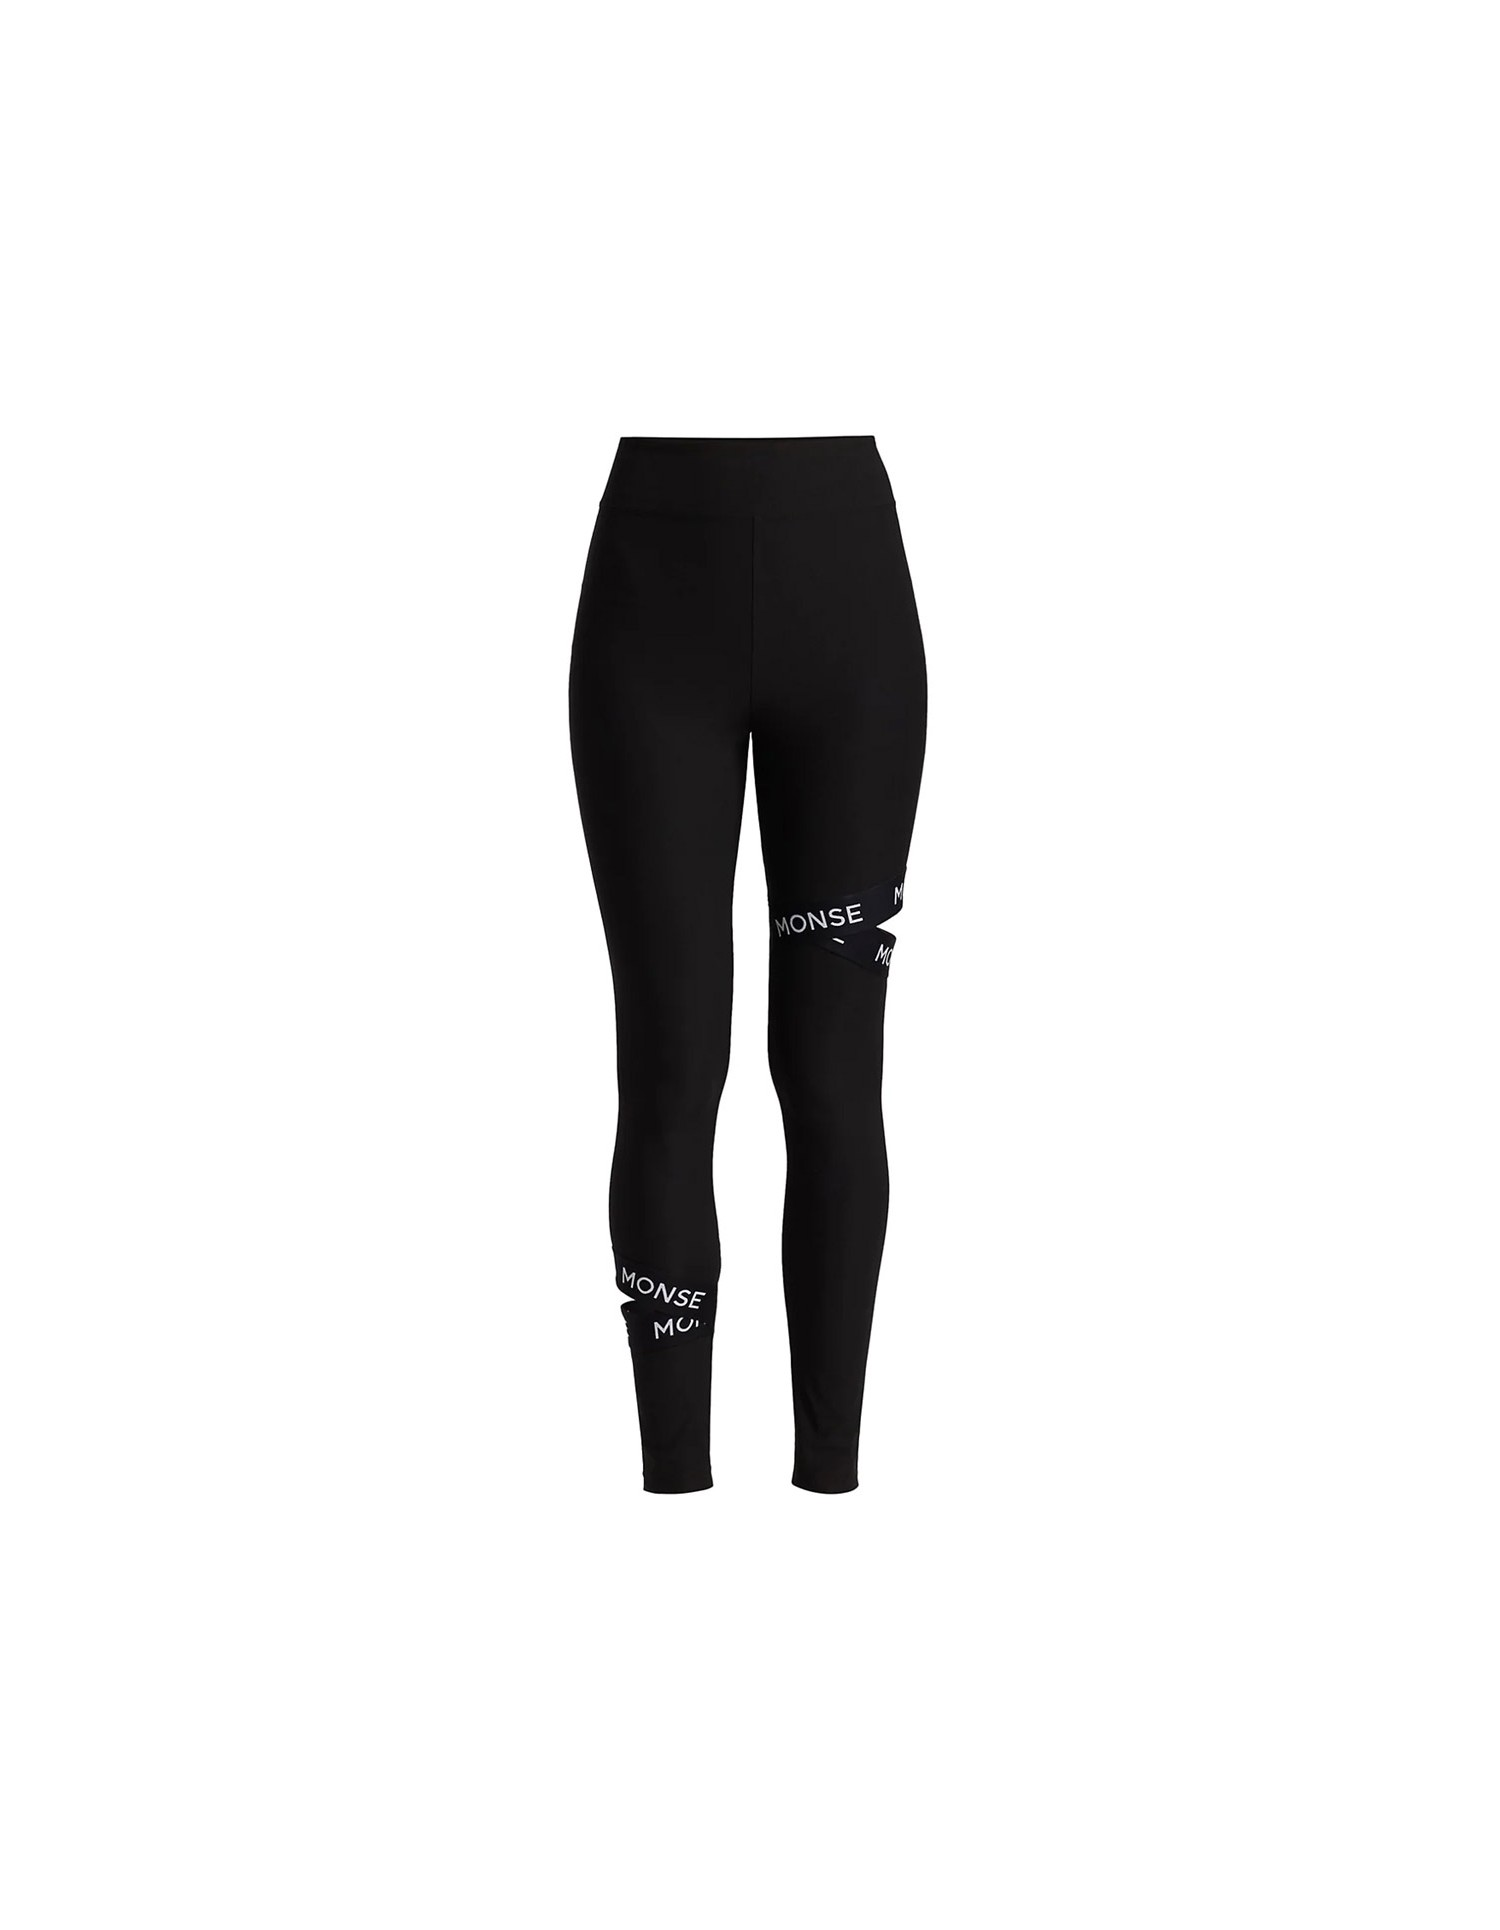 MONSE Cut Out Leggings in Black on Model Front View